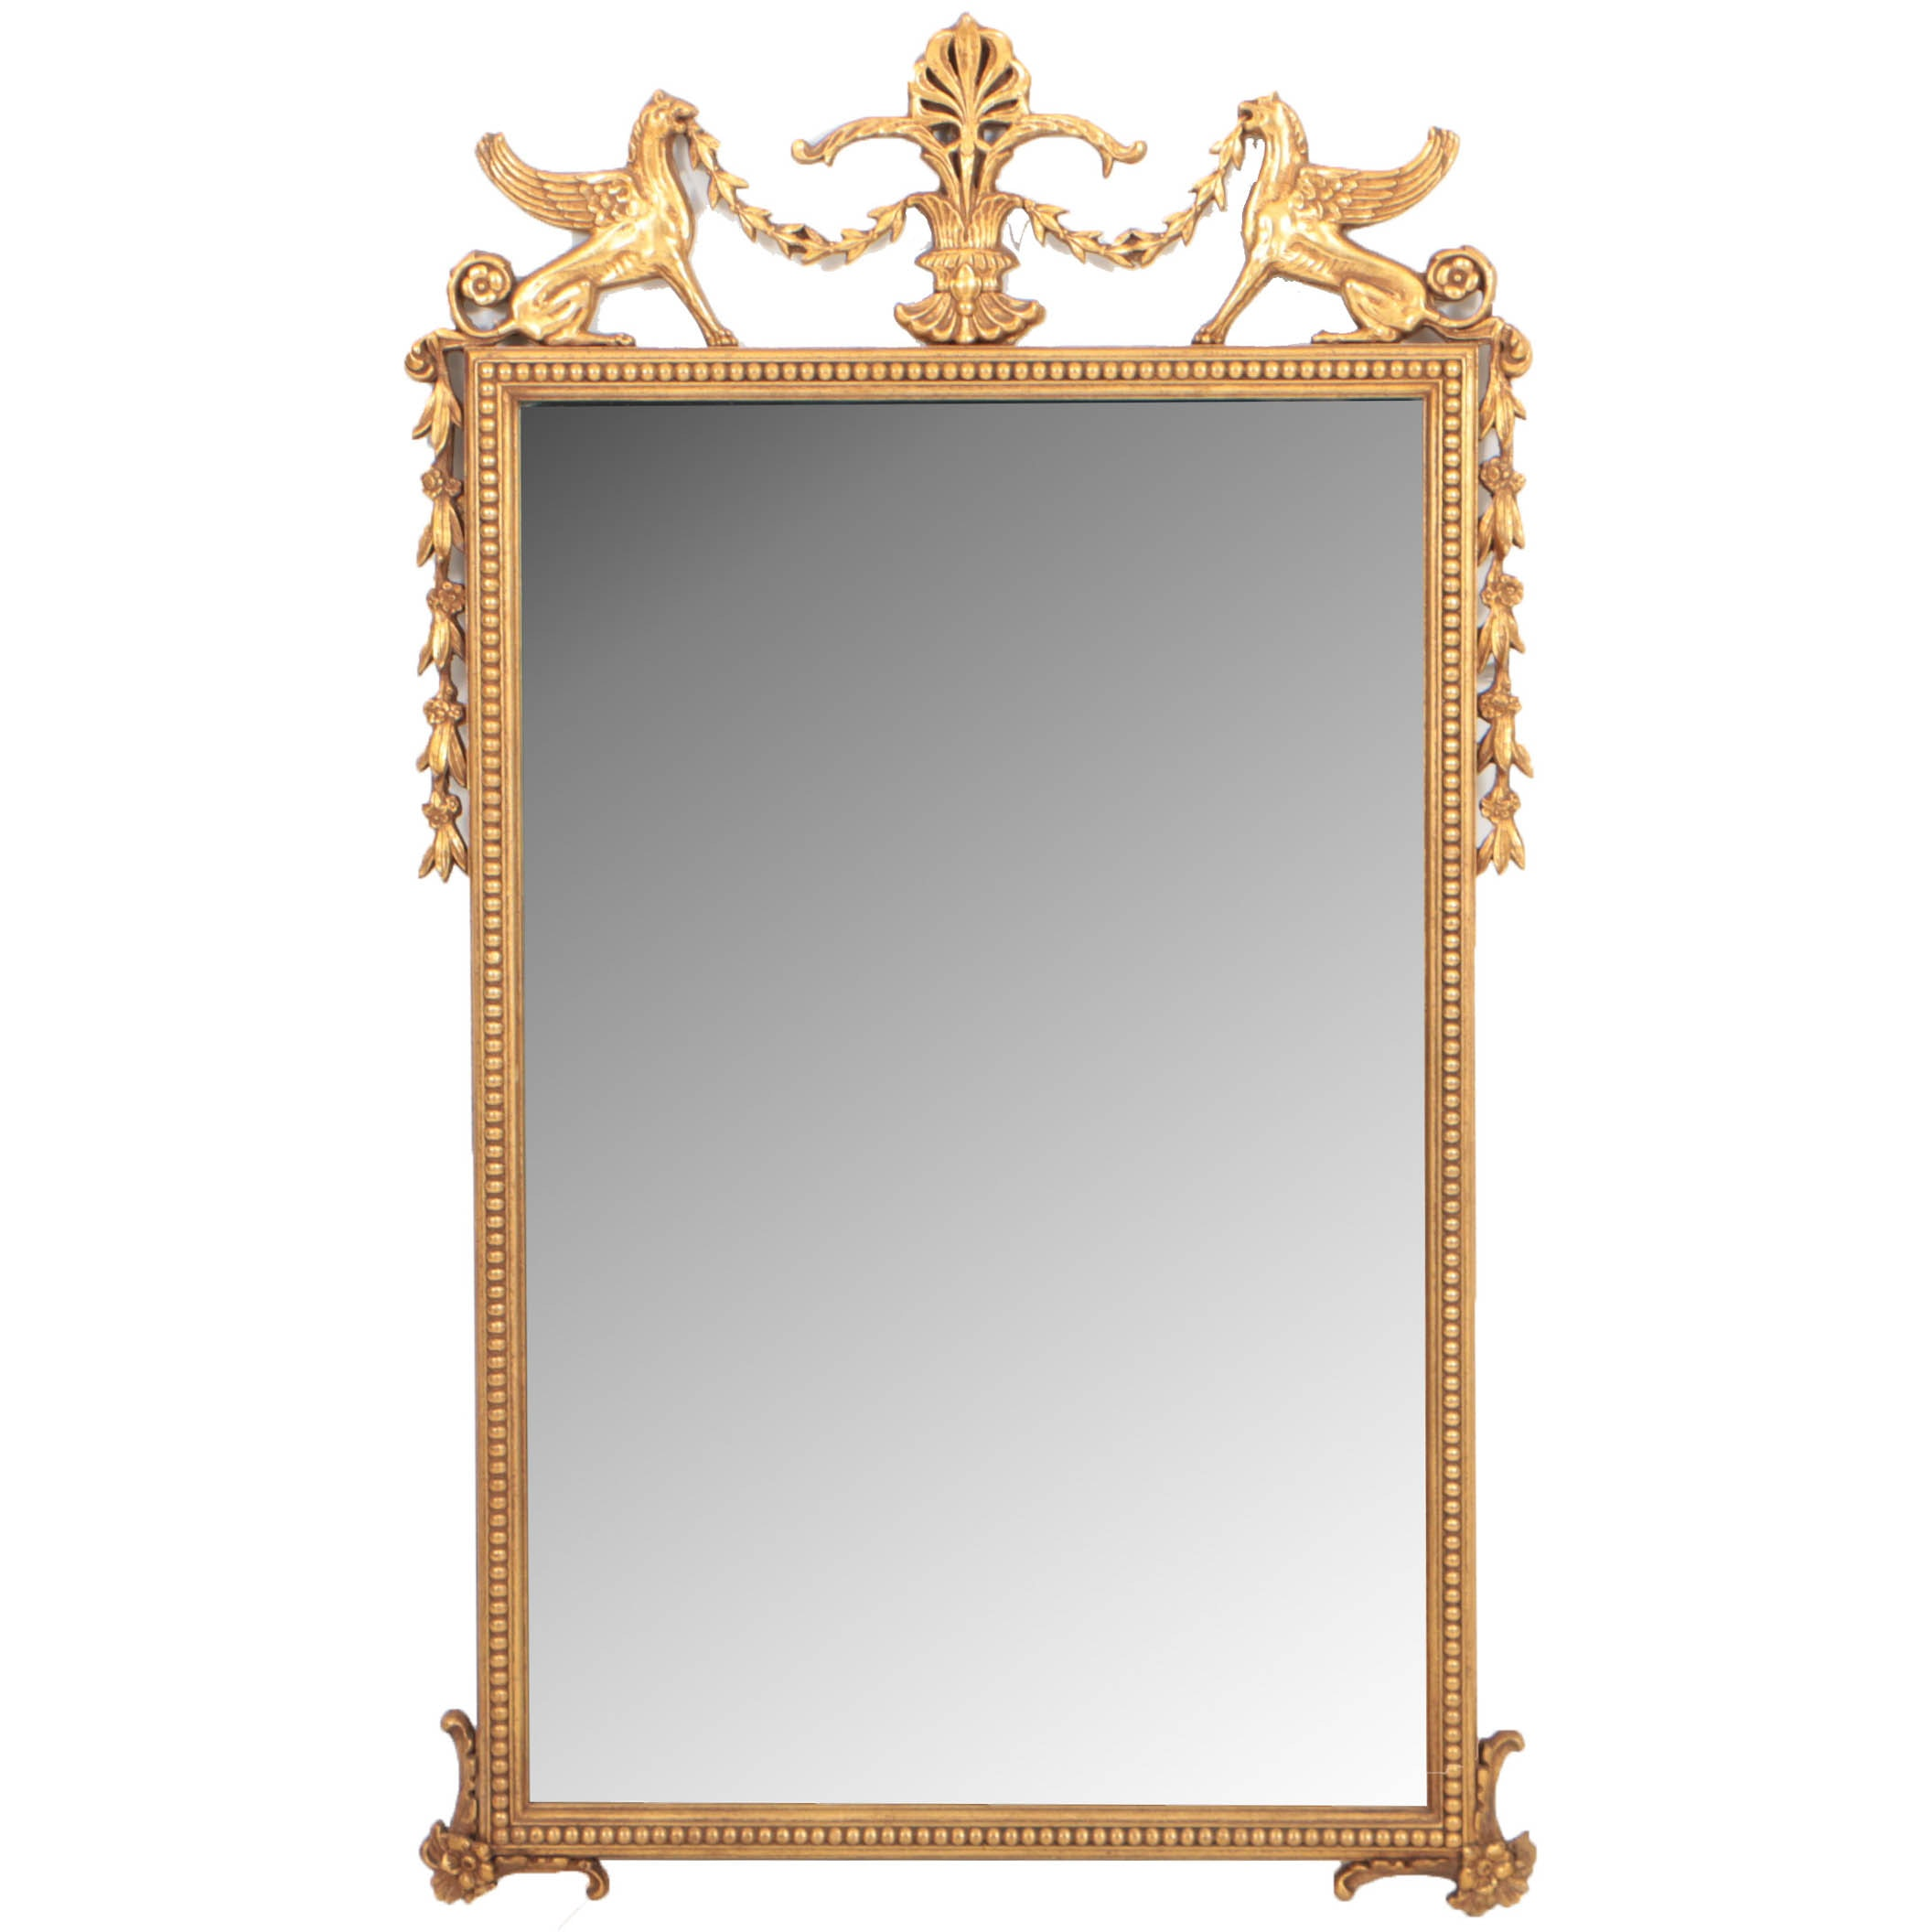 Regency Style Giltwood Mirror with Griffin Cresting, 20th Century